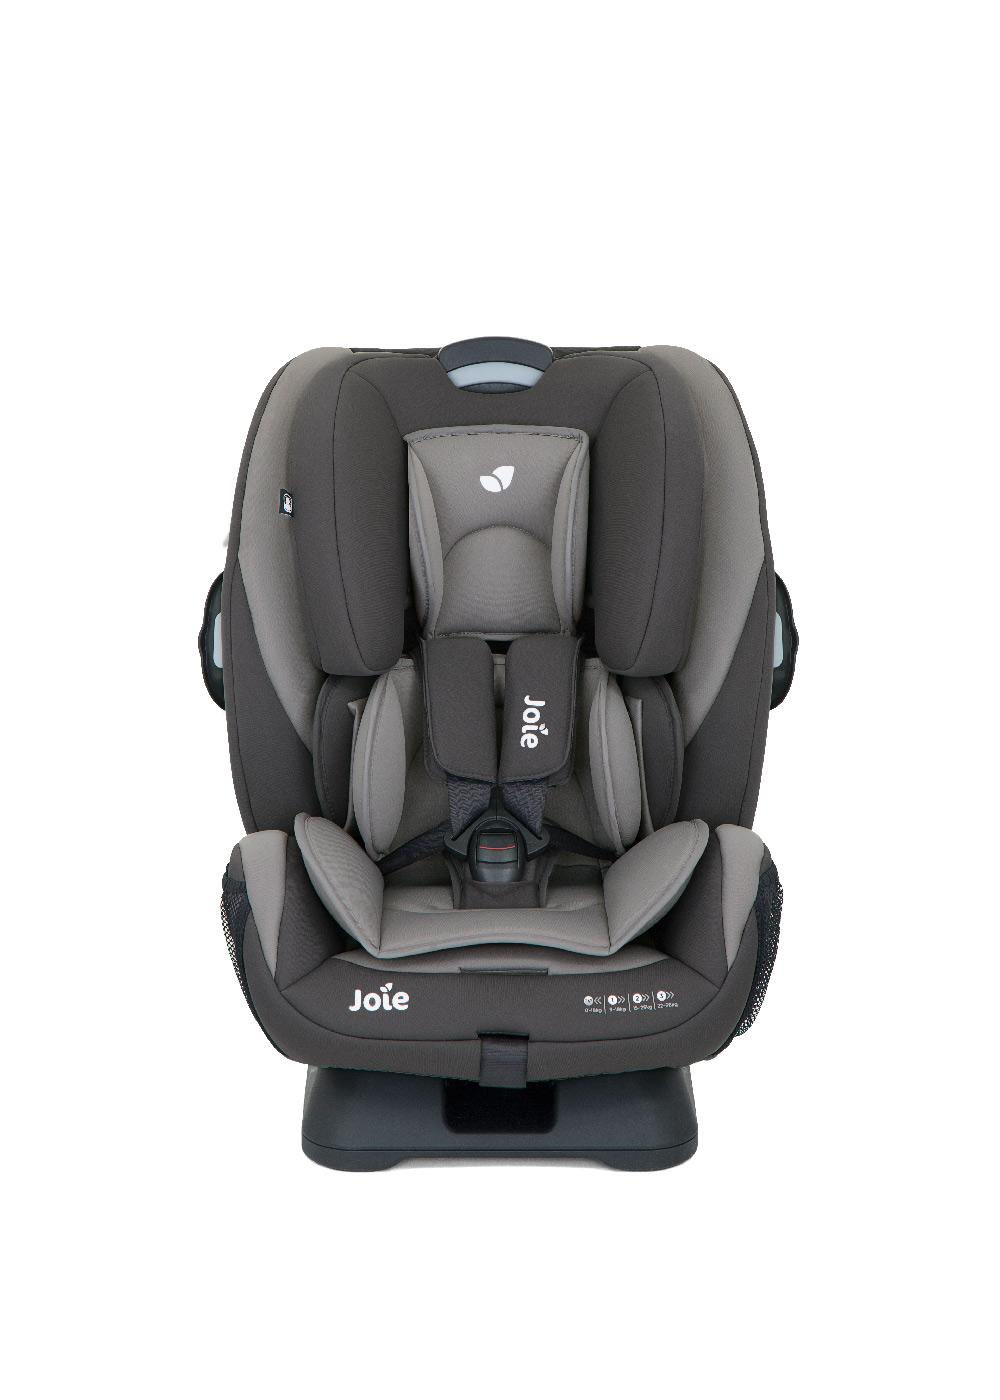 Joie Every Stage safety seat 0-36kg Dark Pewter - Joie